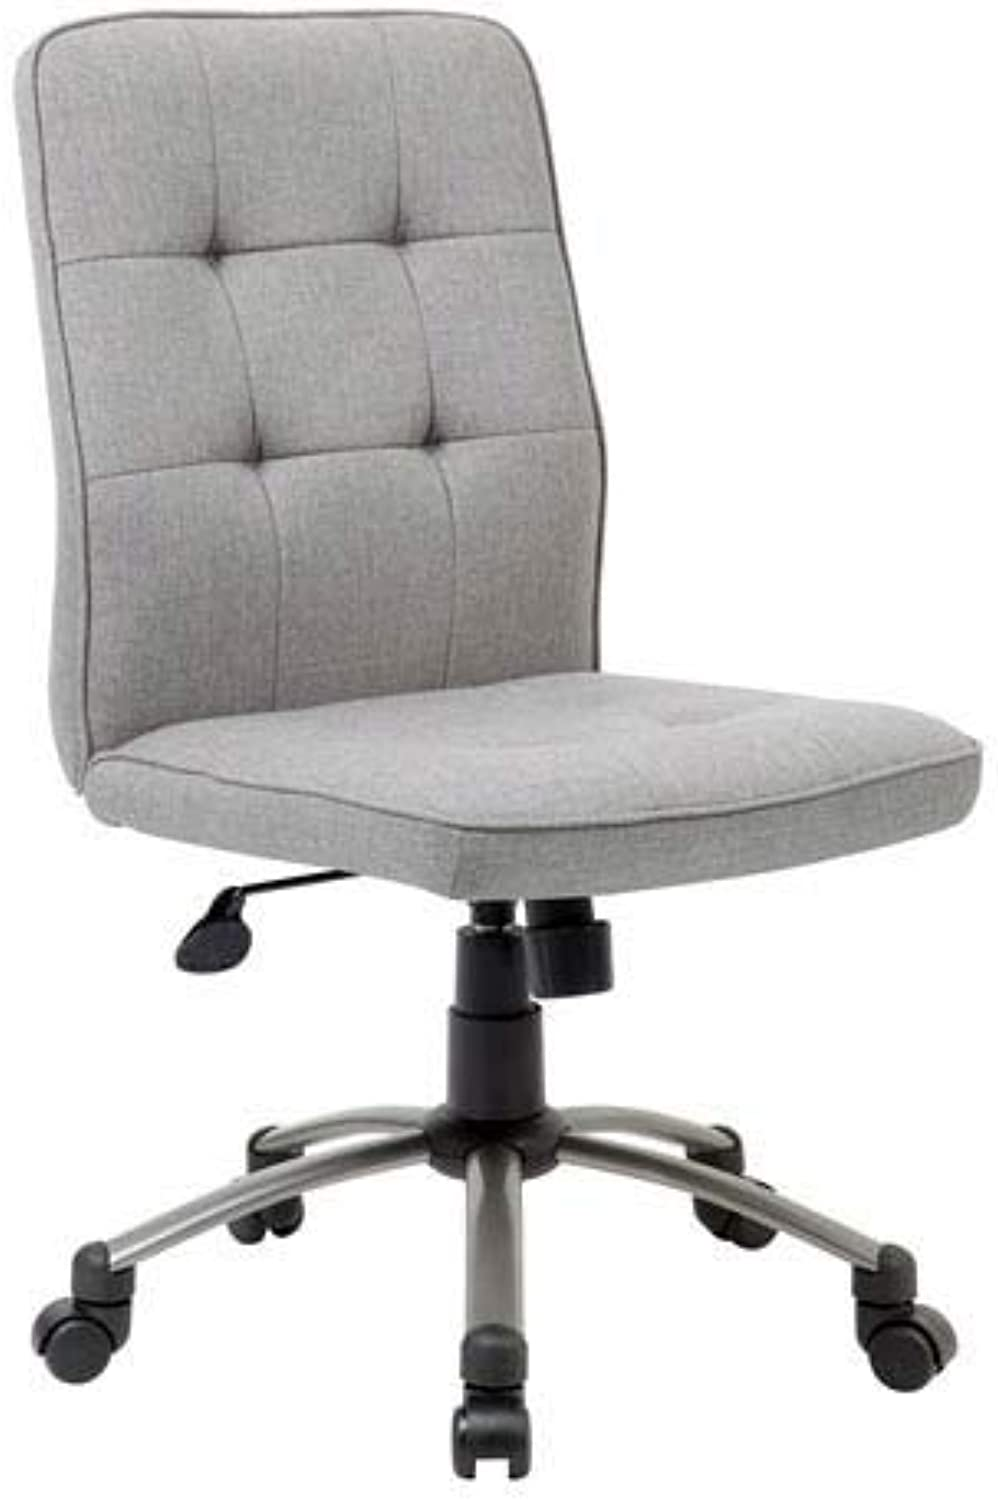 Boss Office Products (BOSXK) 1 Ergonomic Office Chair, Fabric, Taupe